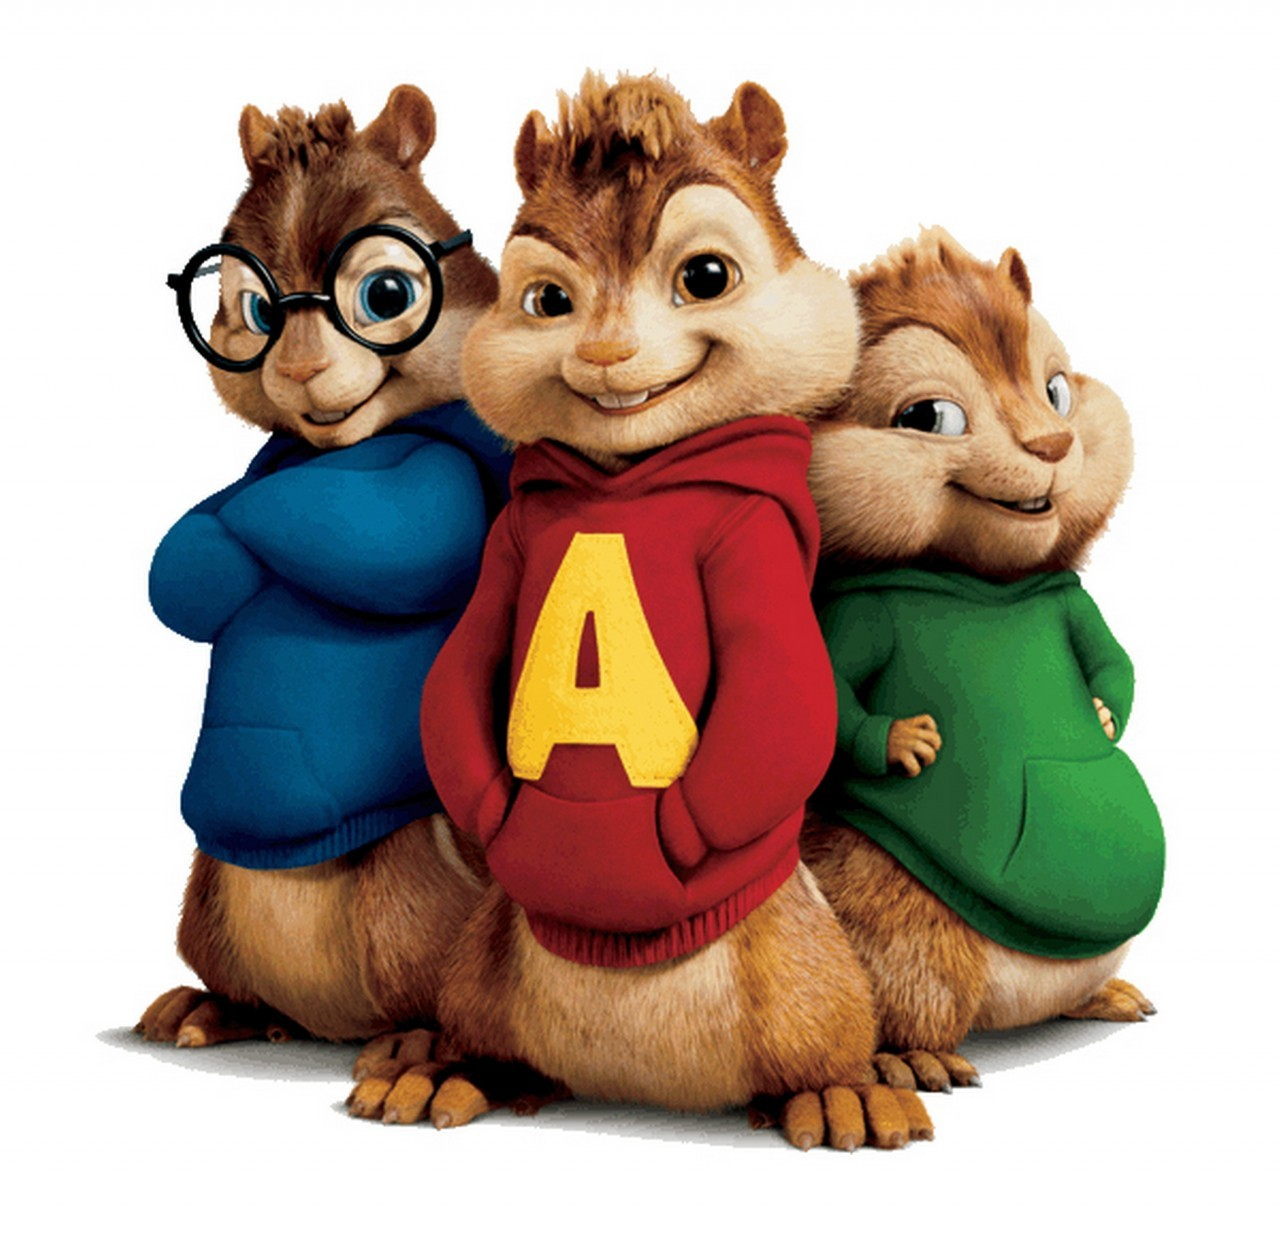 Artworks Alvin et les Chipmunks